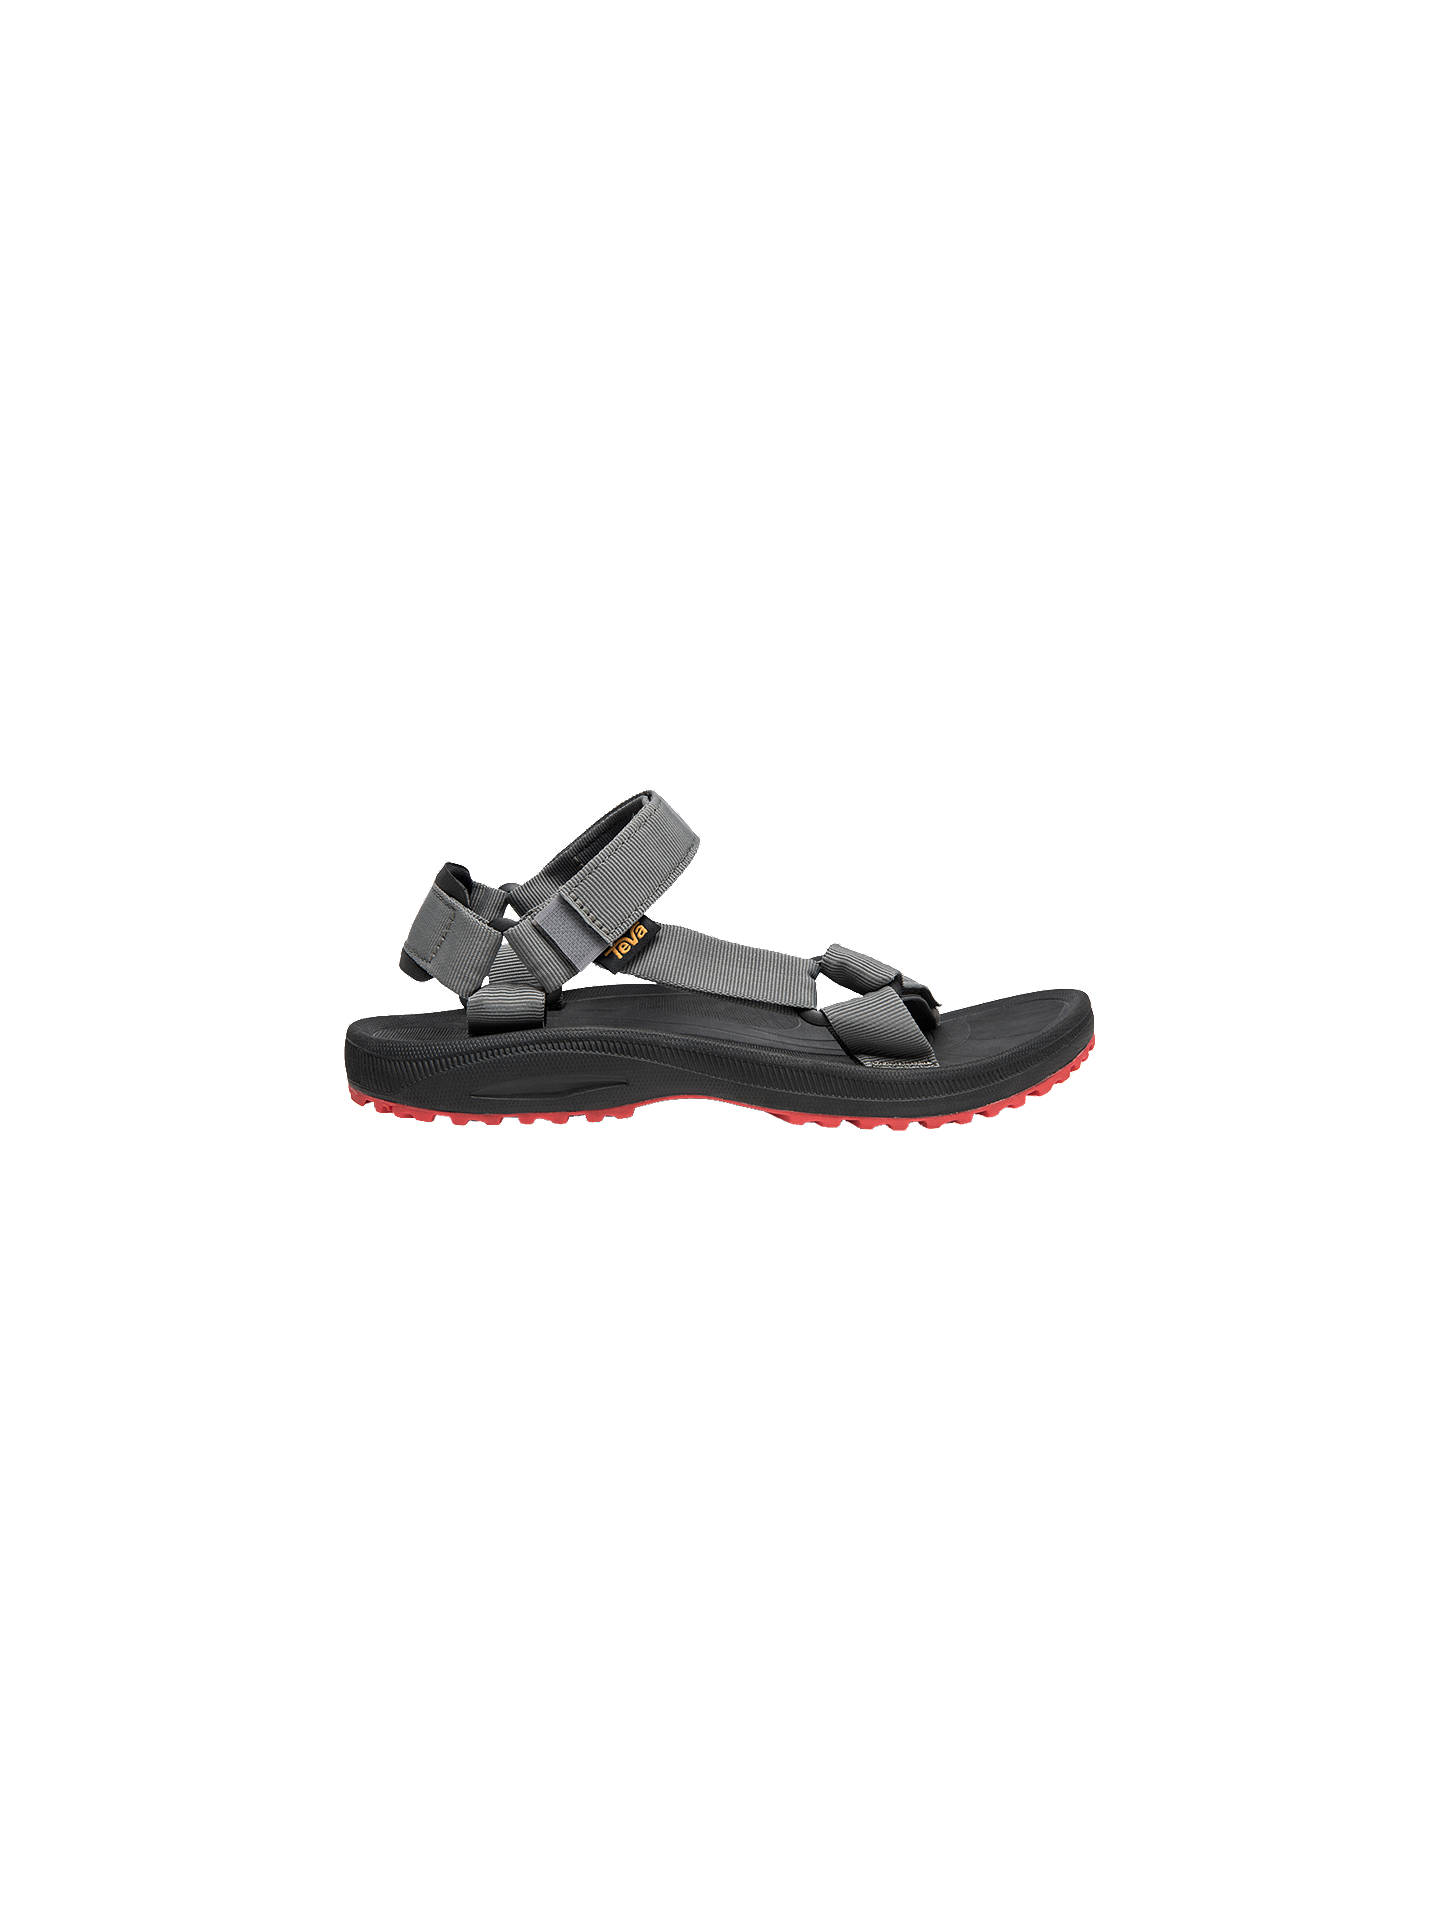 05bcc33b6 Teva Winsted Solid Sandals at John Lewis   Partners